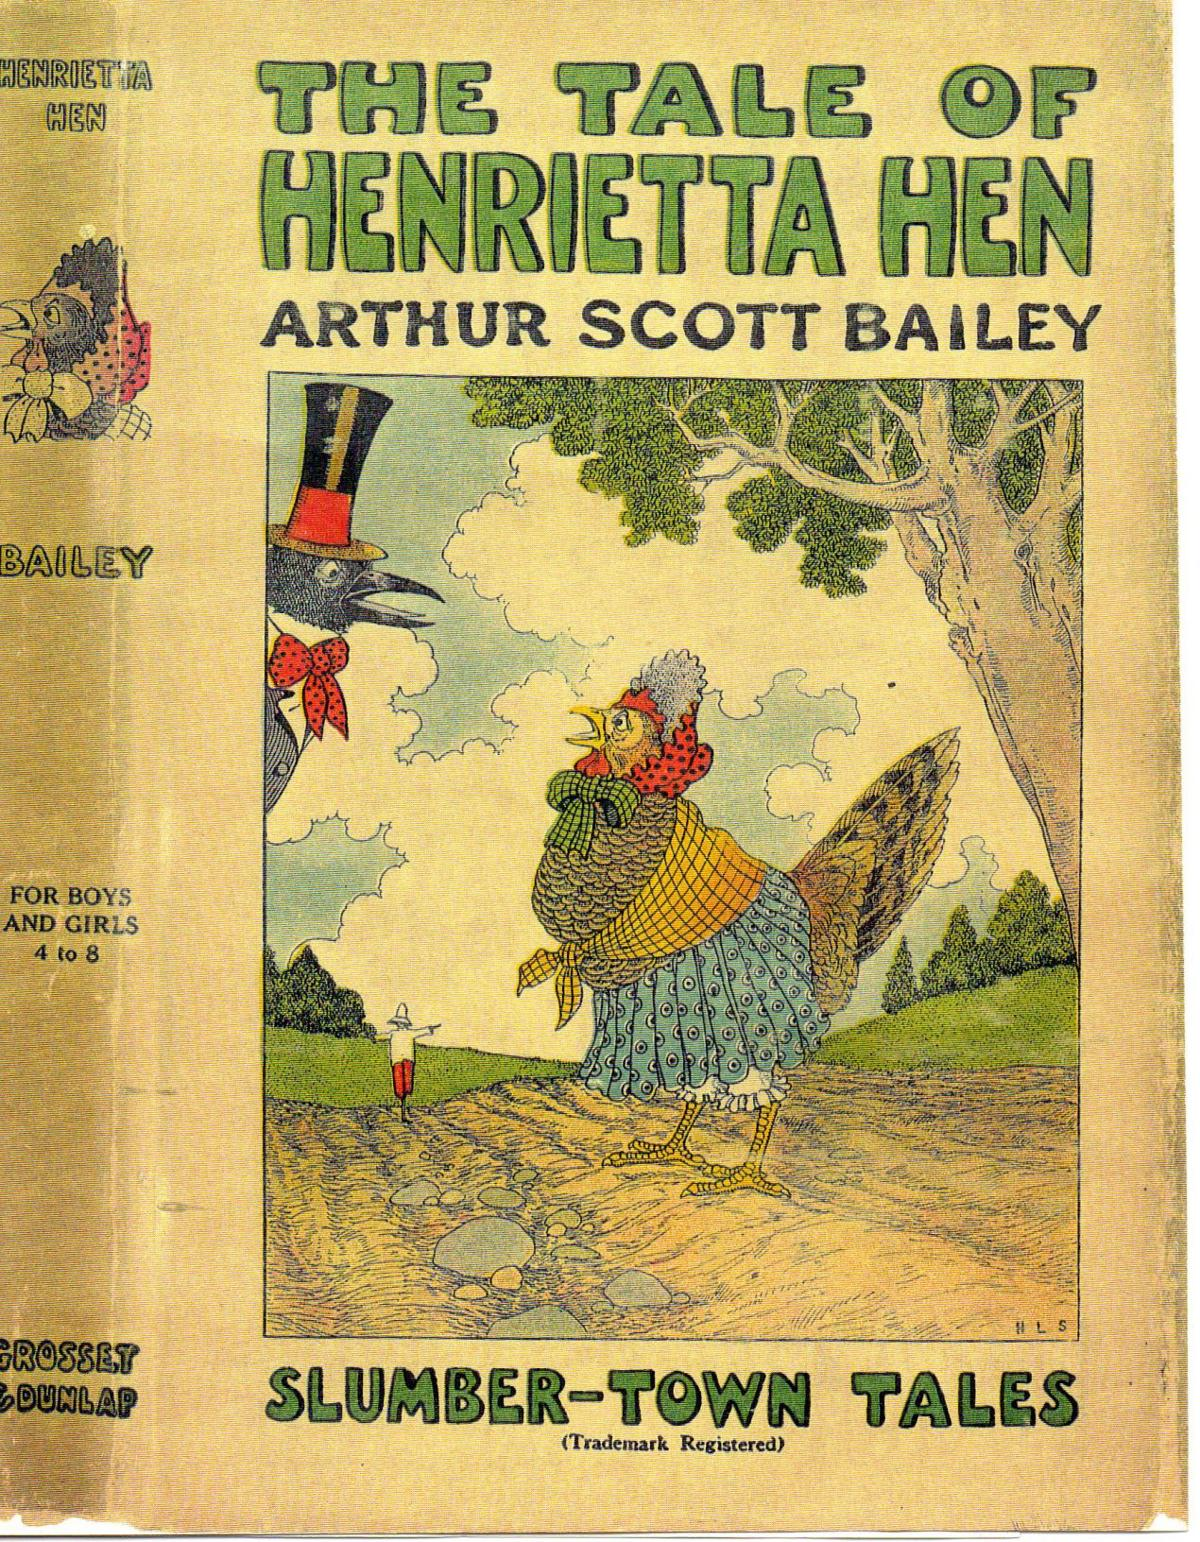 Remembering the Bailey Books on Natural History